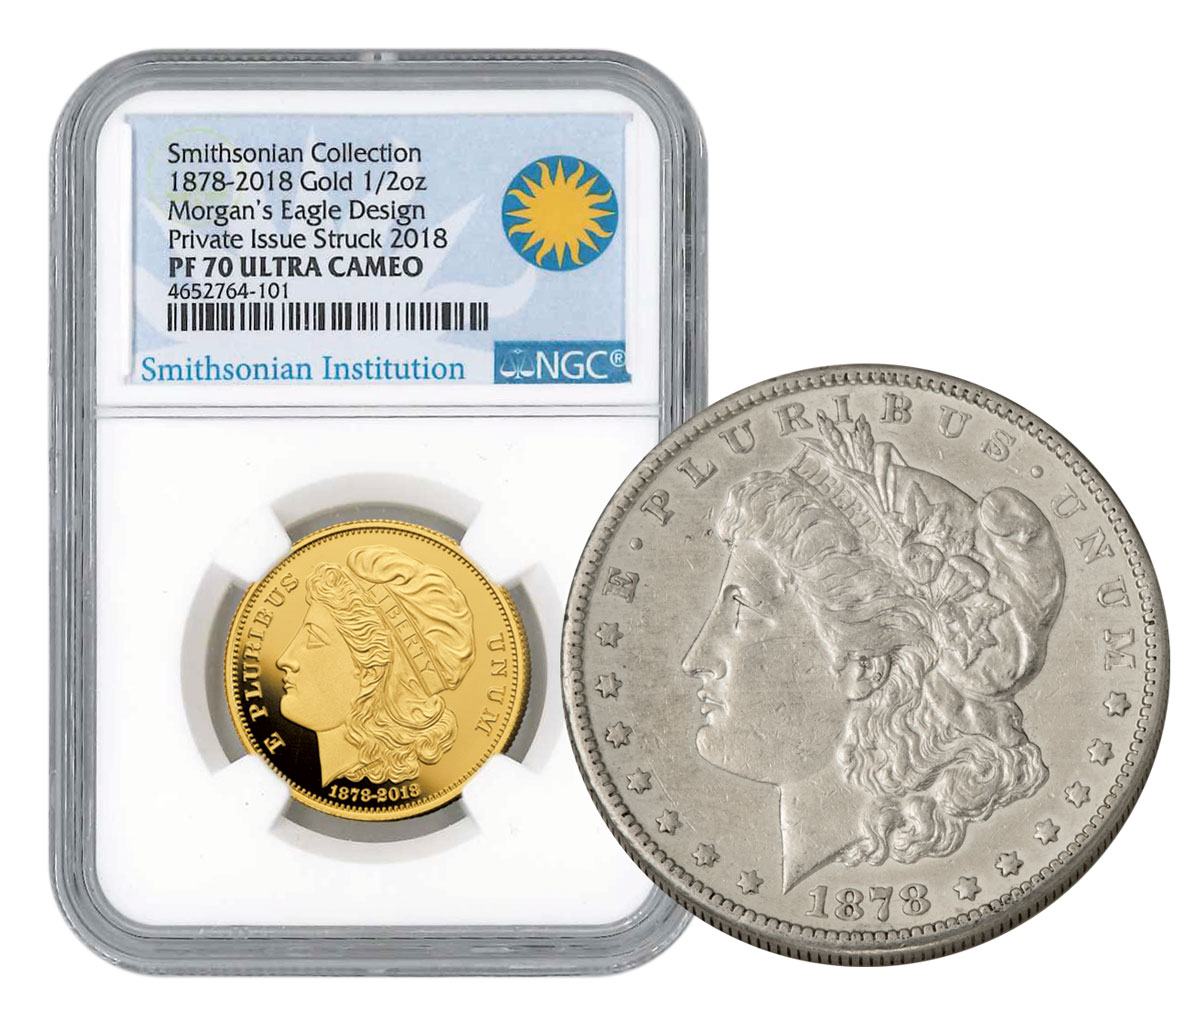 2-Coin Set - (2018) Smithsonian - 1878 Morgan Eagle Pattern Gold Proof Medal Scarce and Unique Coin Division NGC PF70 UC